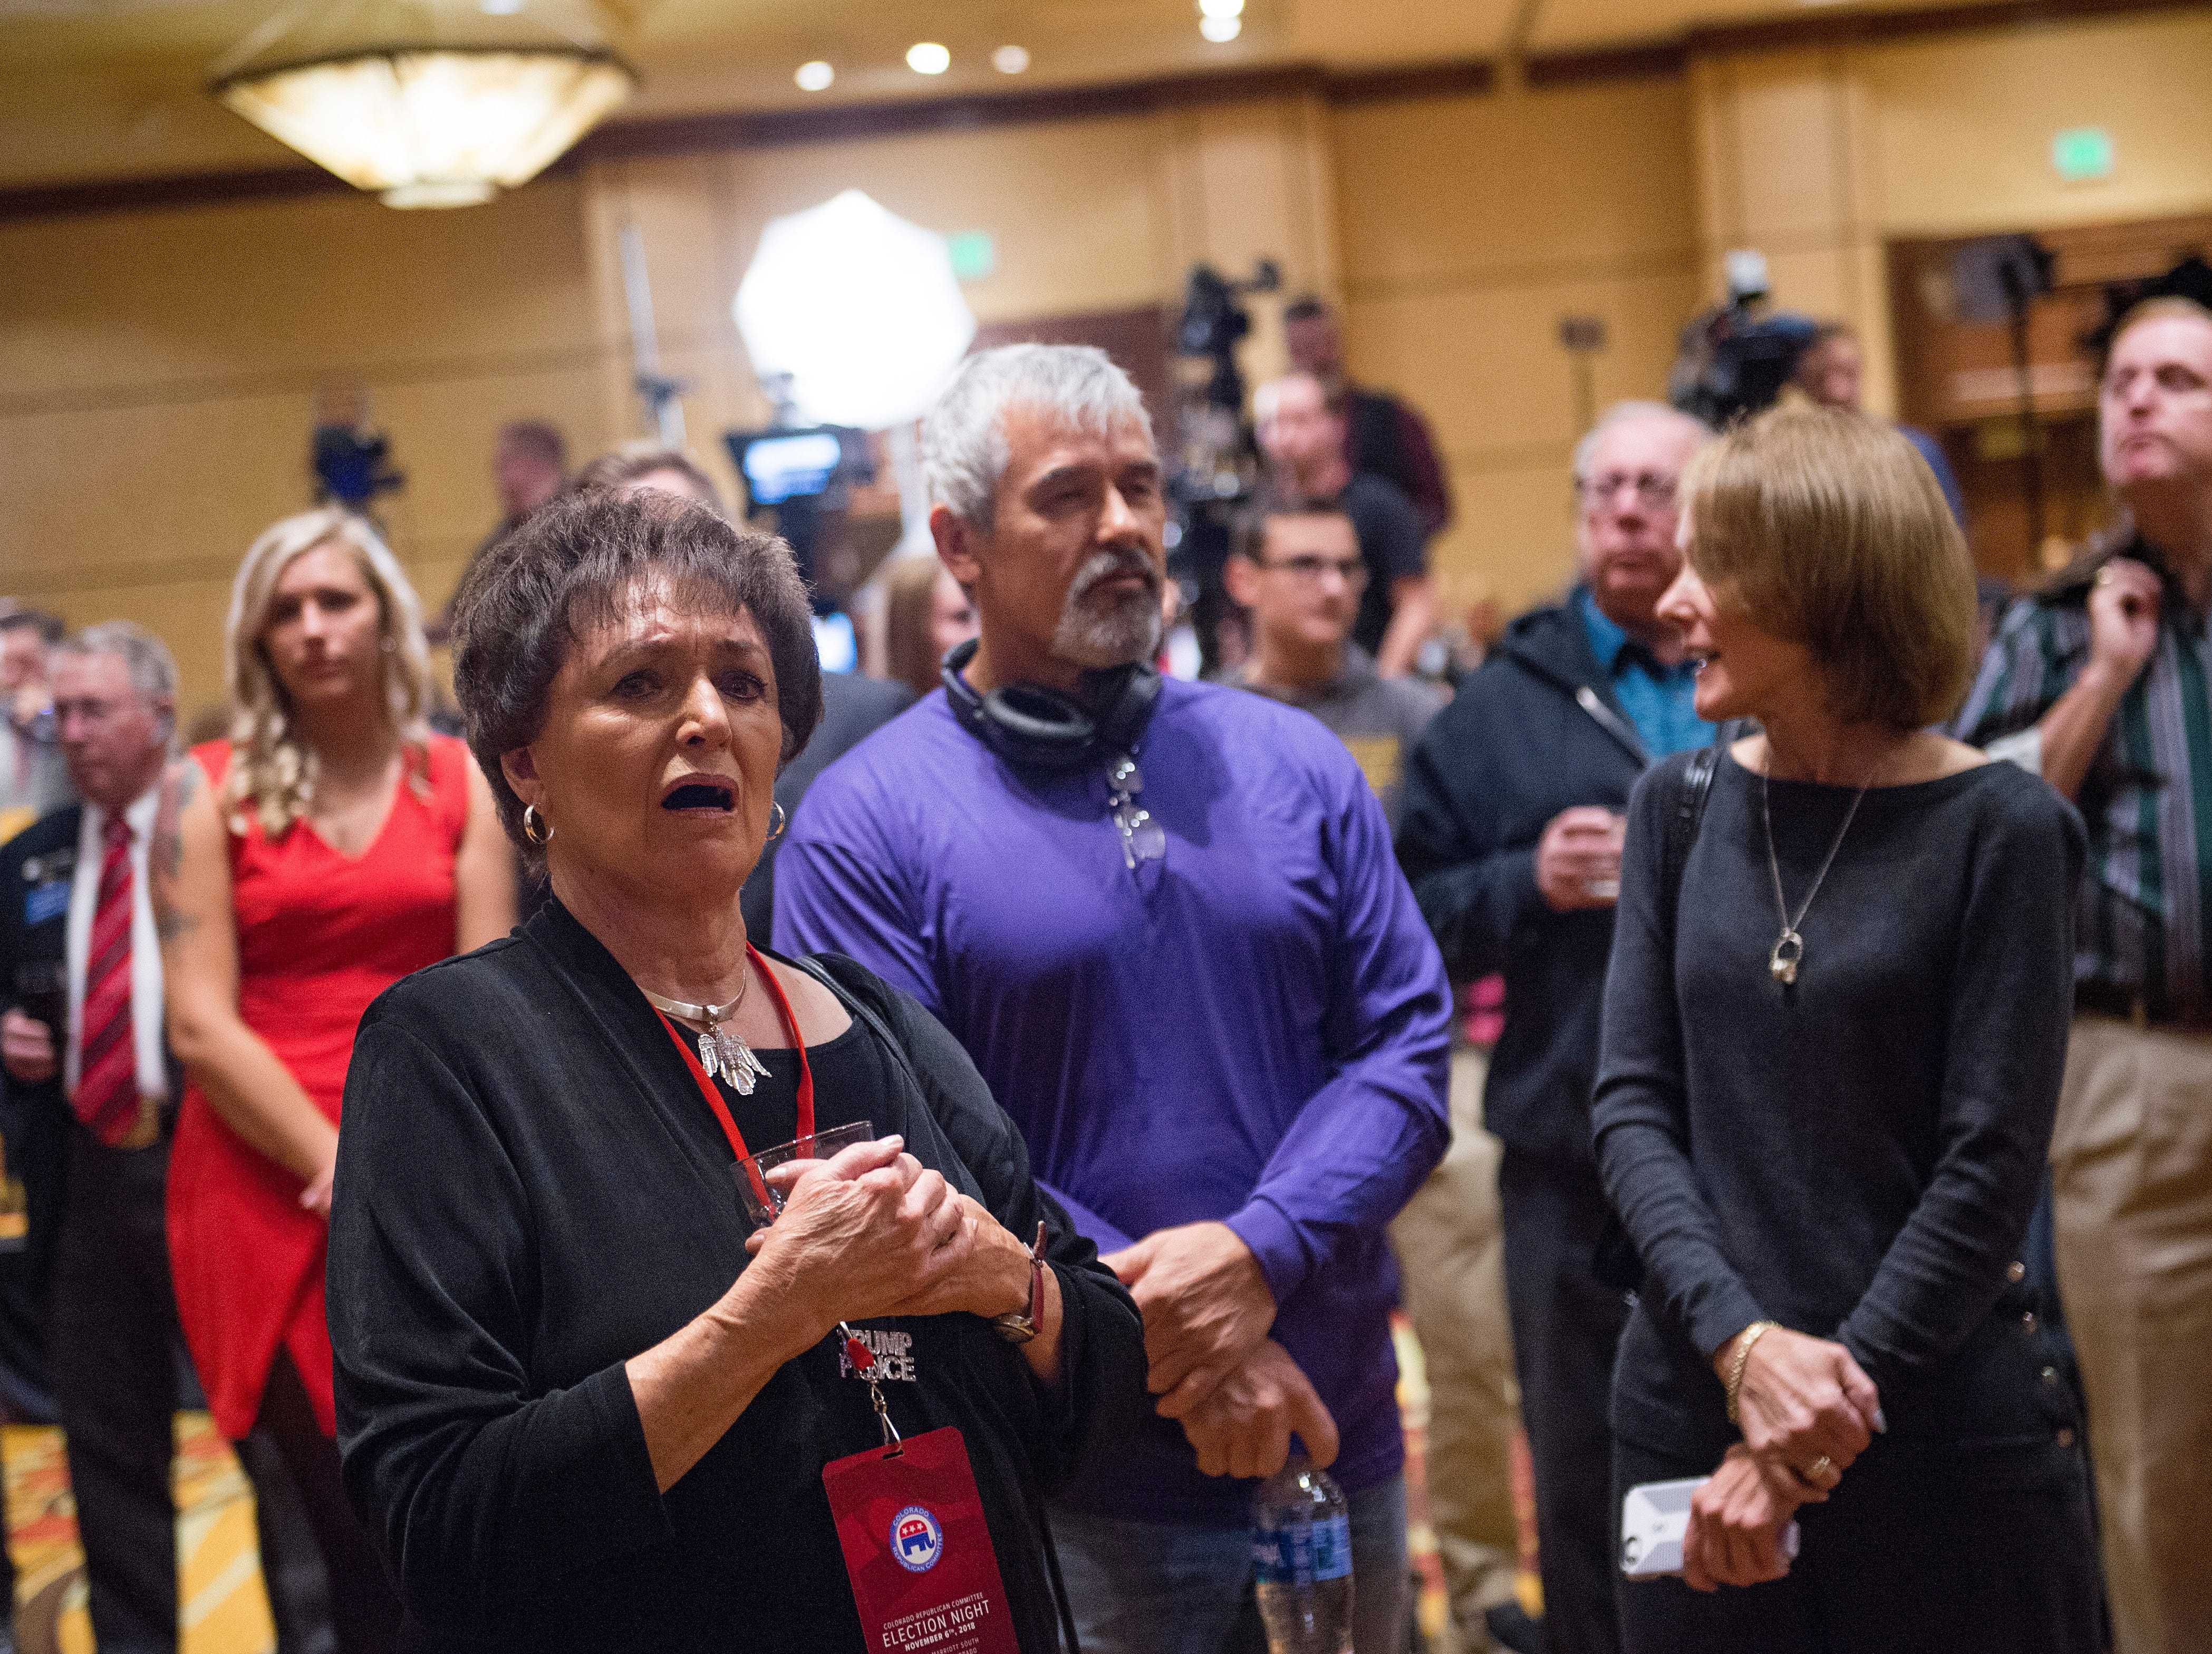 People react to early voting results during a Colorado GOP watch party at the Denver Marriott South at Park Meadows in Lone Tree on Election Day, Tuesday, November 6, 2018.